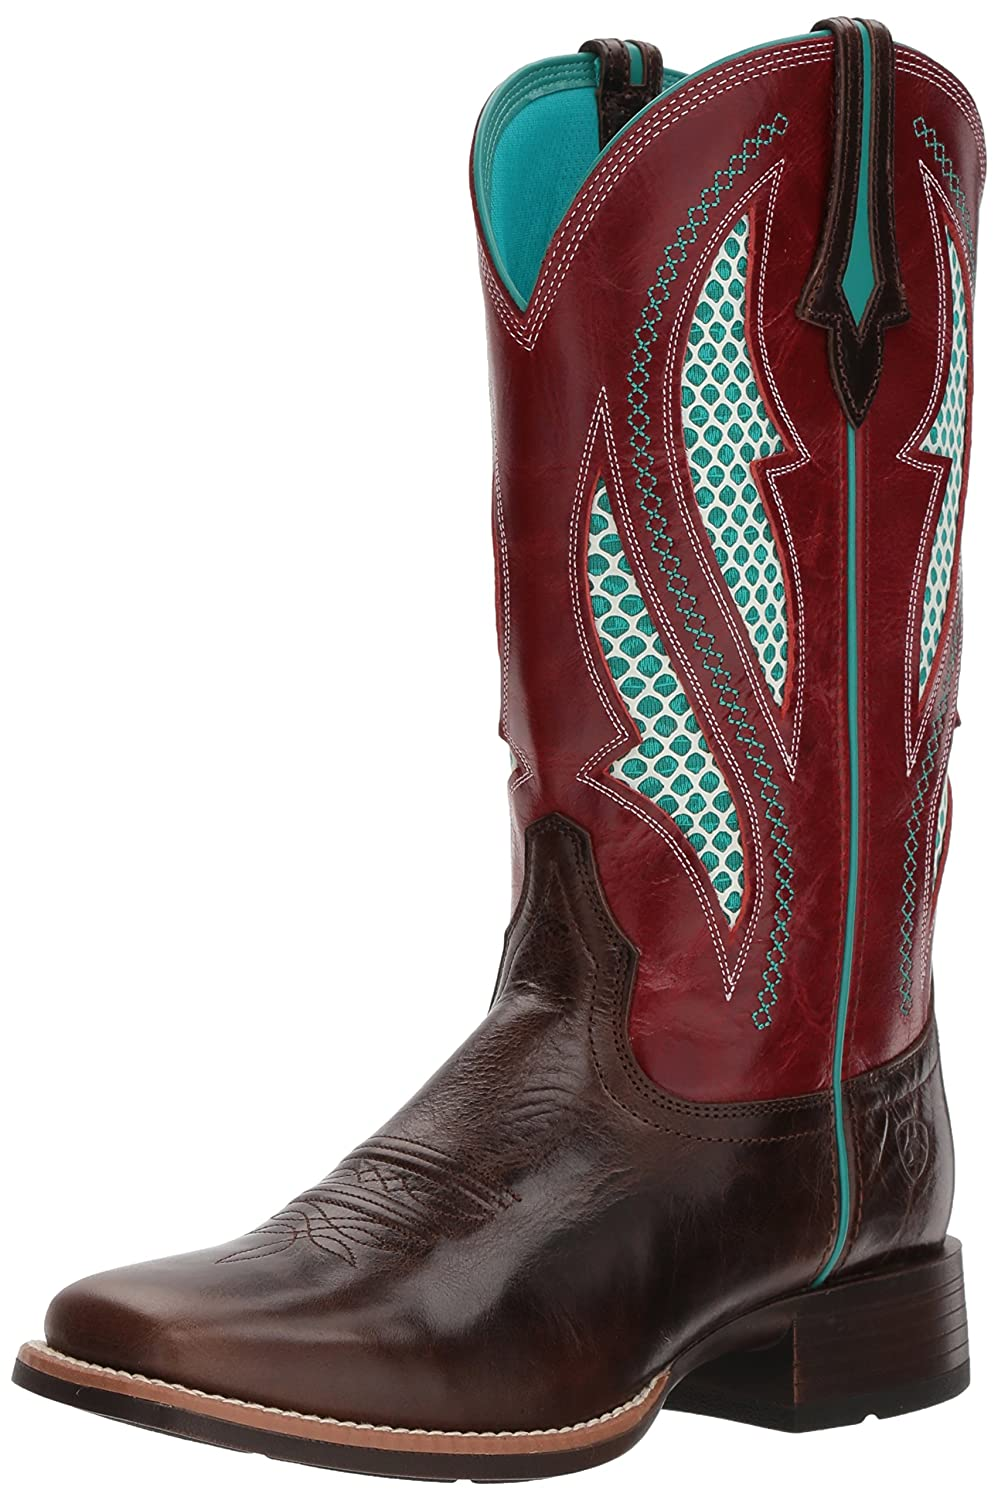 Ariat Women's Venttek Ultra Western Boot B076MKCRRS 6 B(M) US|Chocolate Chip/Rooster Red